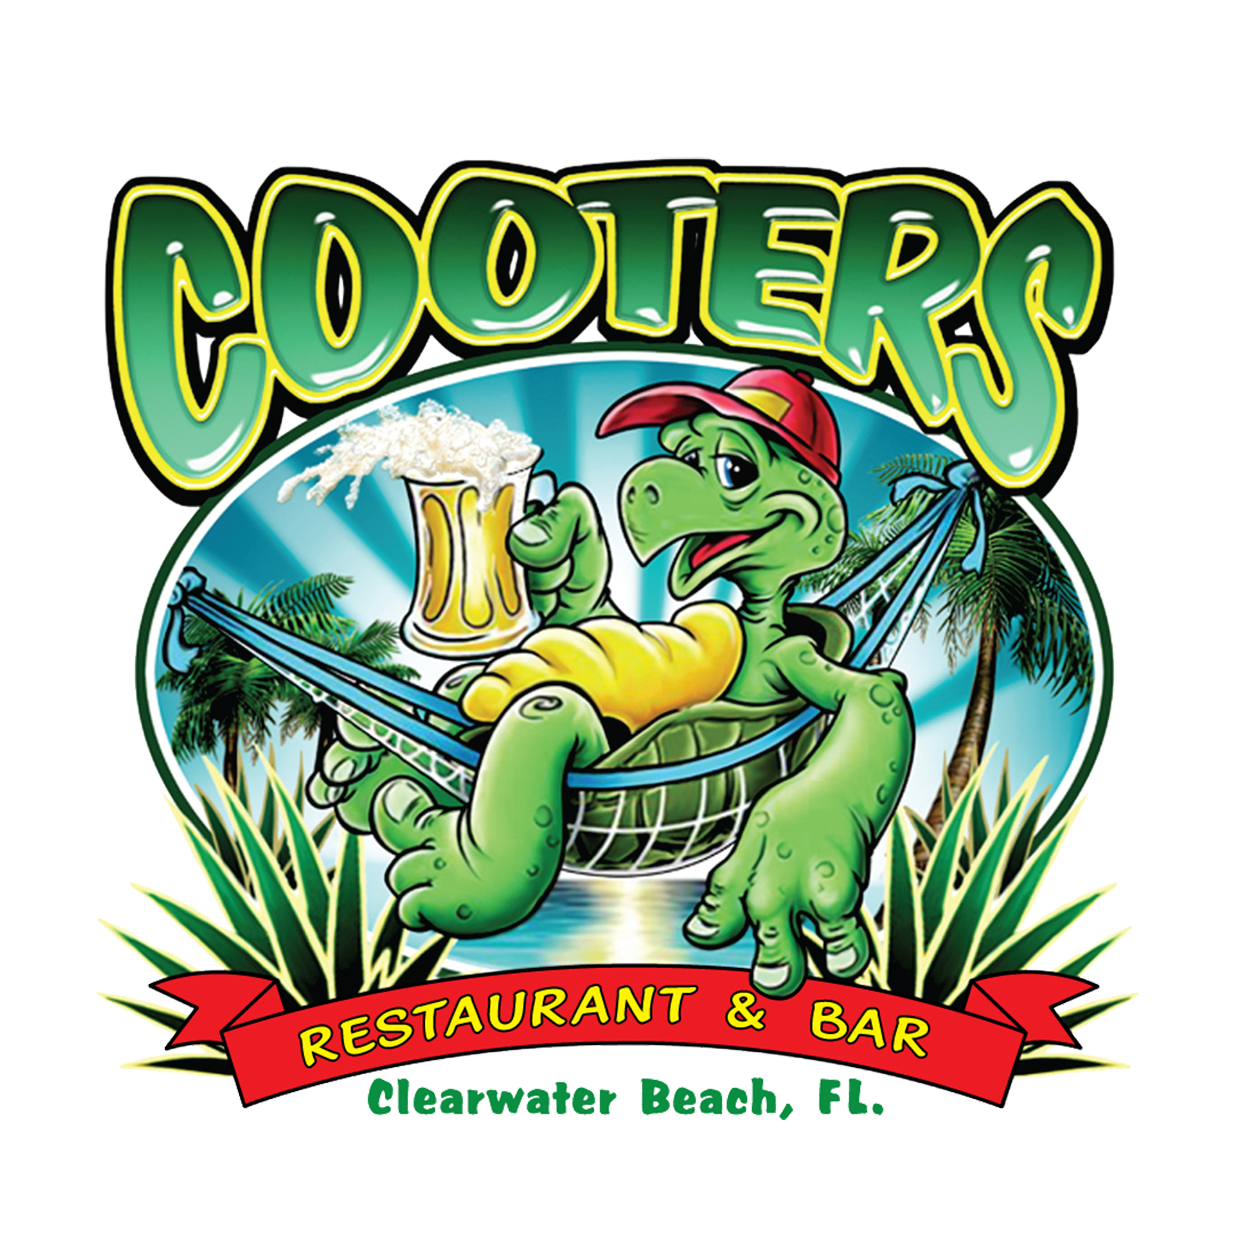 Cooters Restaurant & Bar